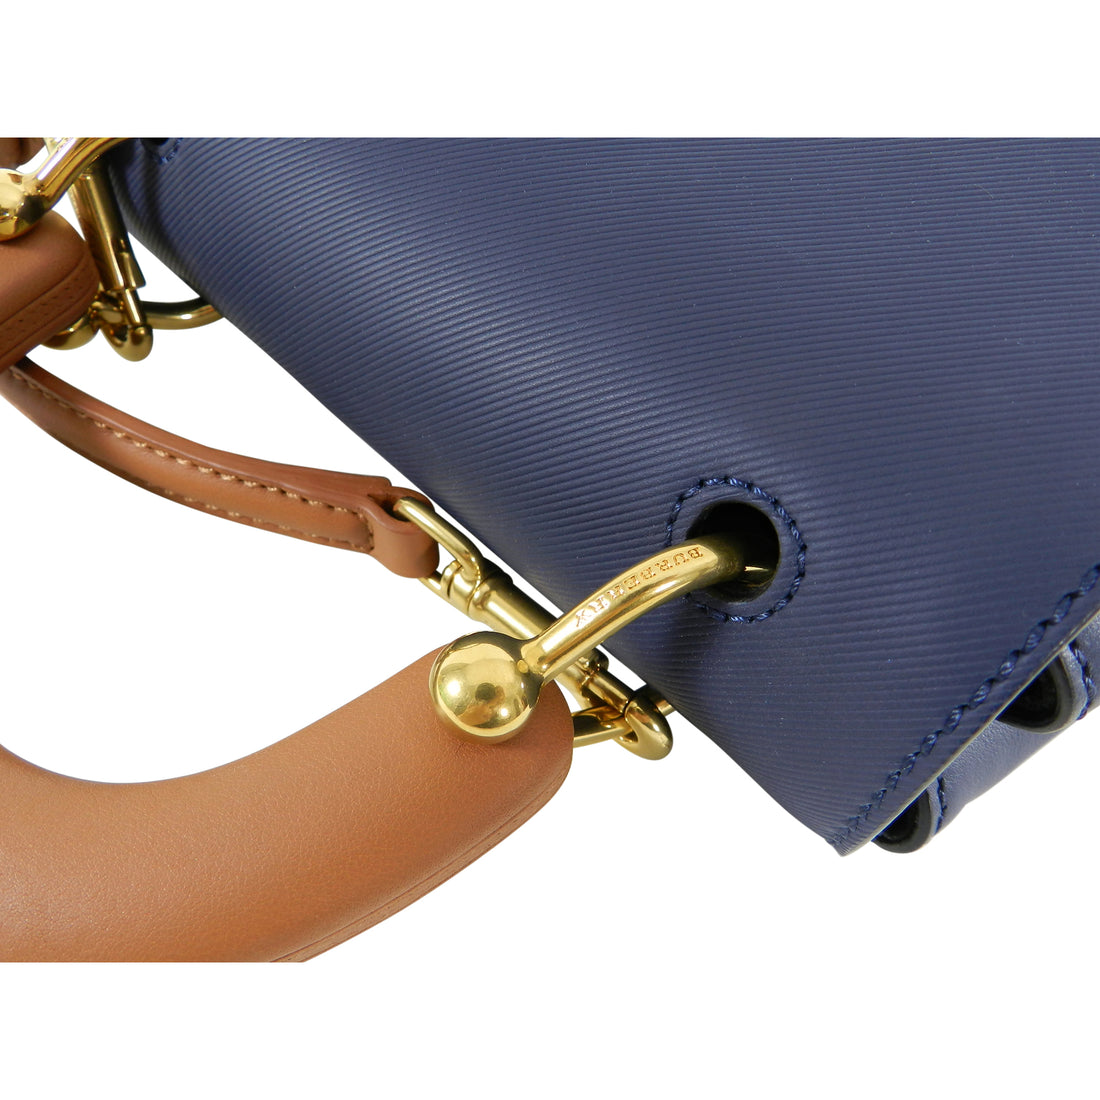 Burberry DK88 Small Top Handle Bag in Ink Blue